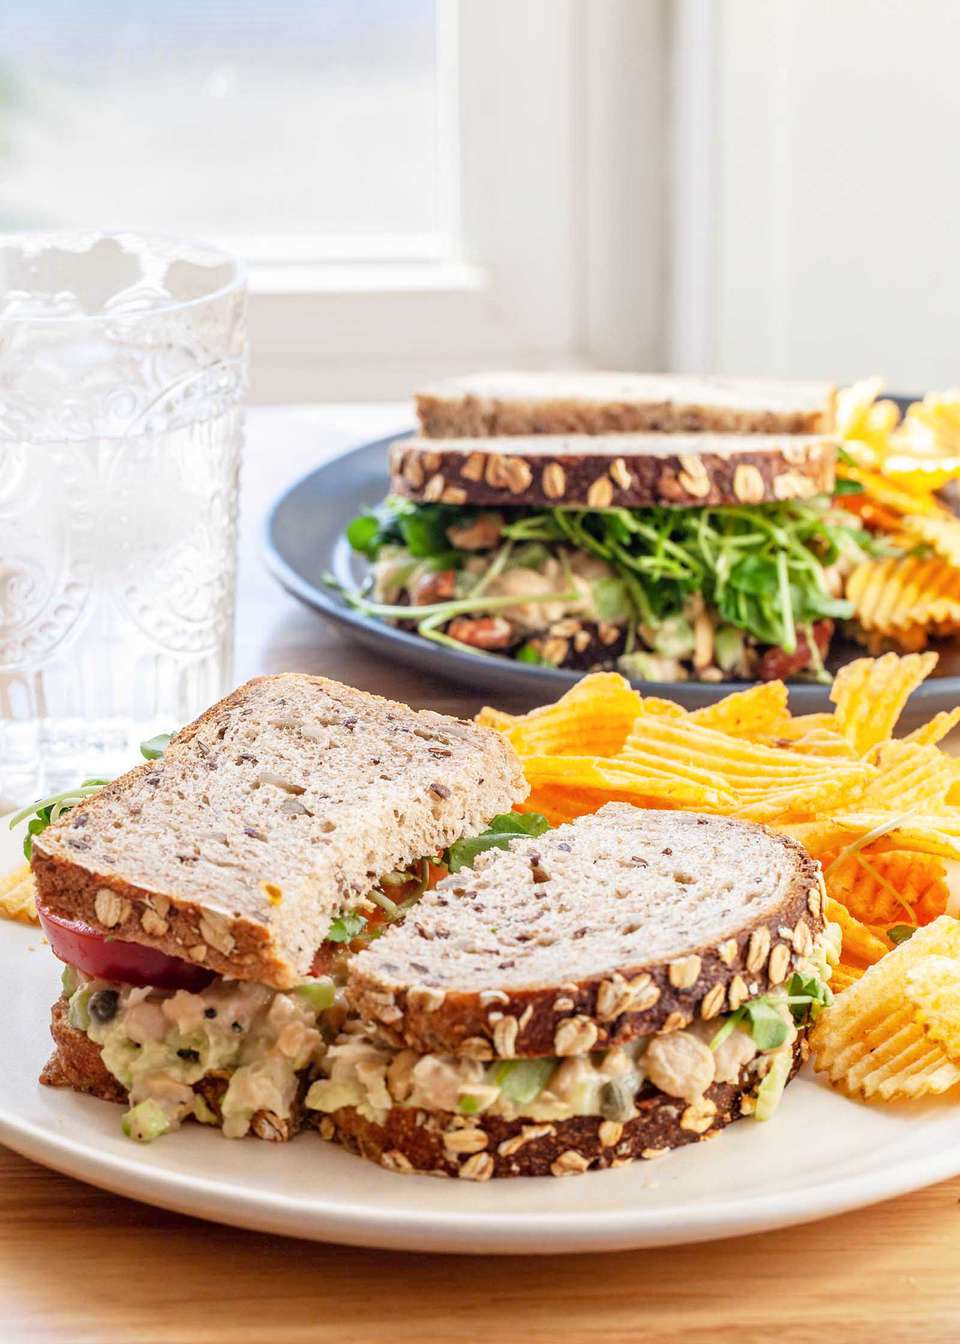 Side view of a vegetarian chickpea sandwich on plate with chips. A second plate and sandwich are behind it.